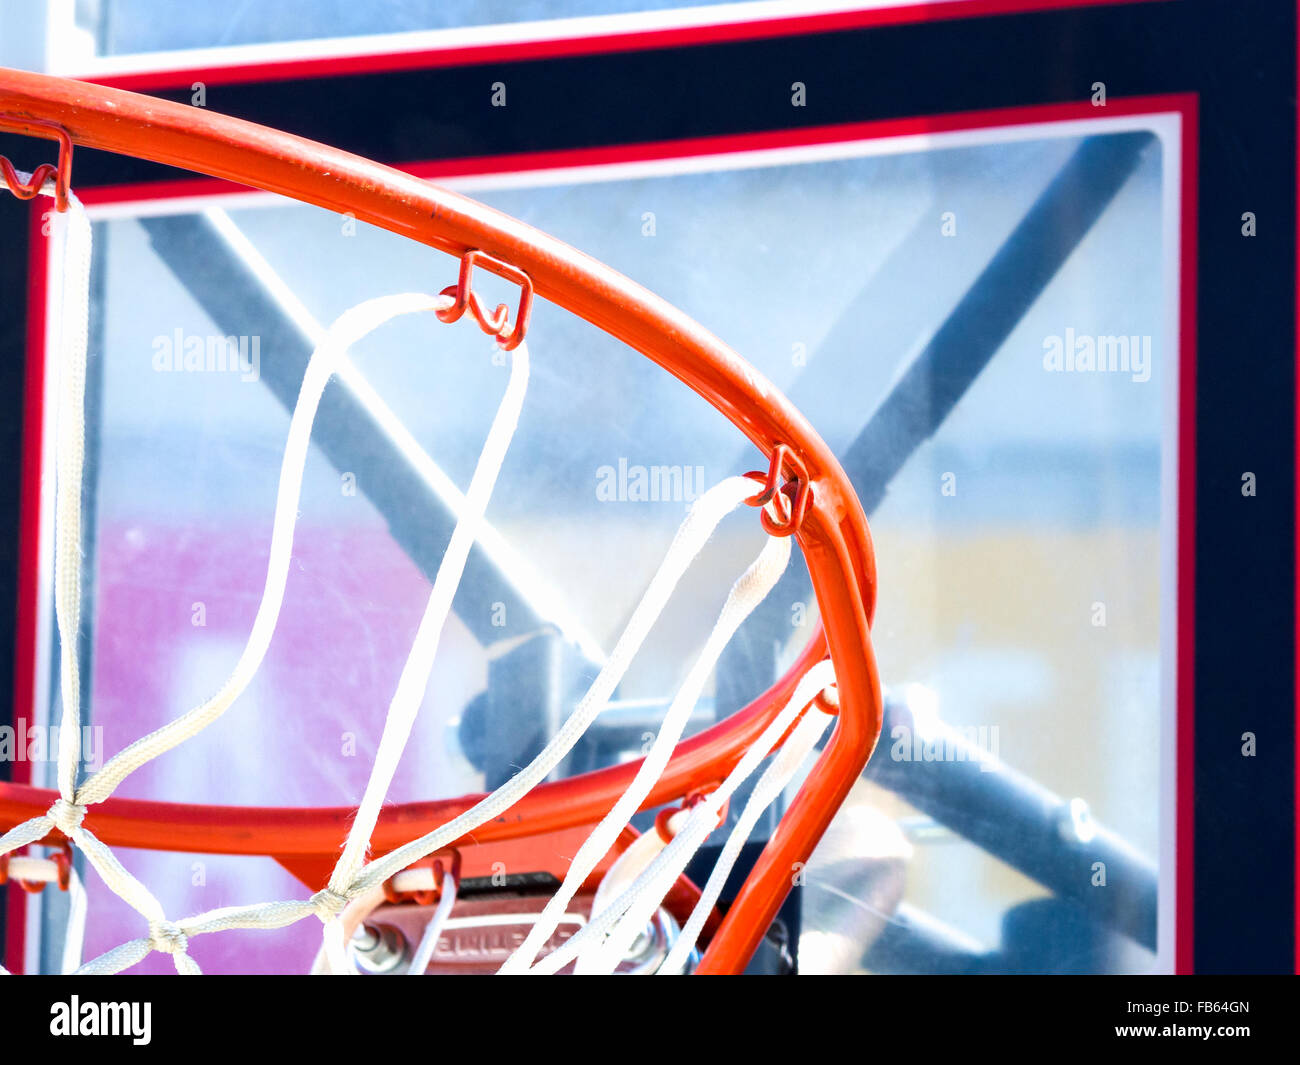 Inside of a basketball. Close up image of a basketball - Stock Image